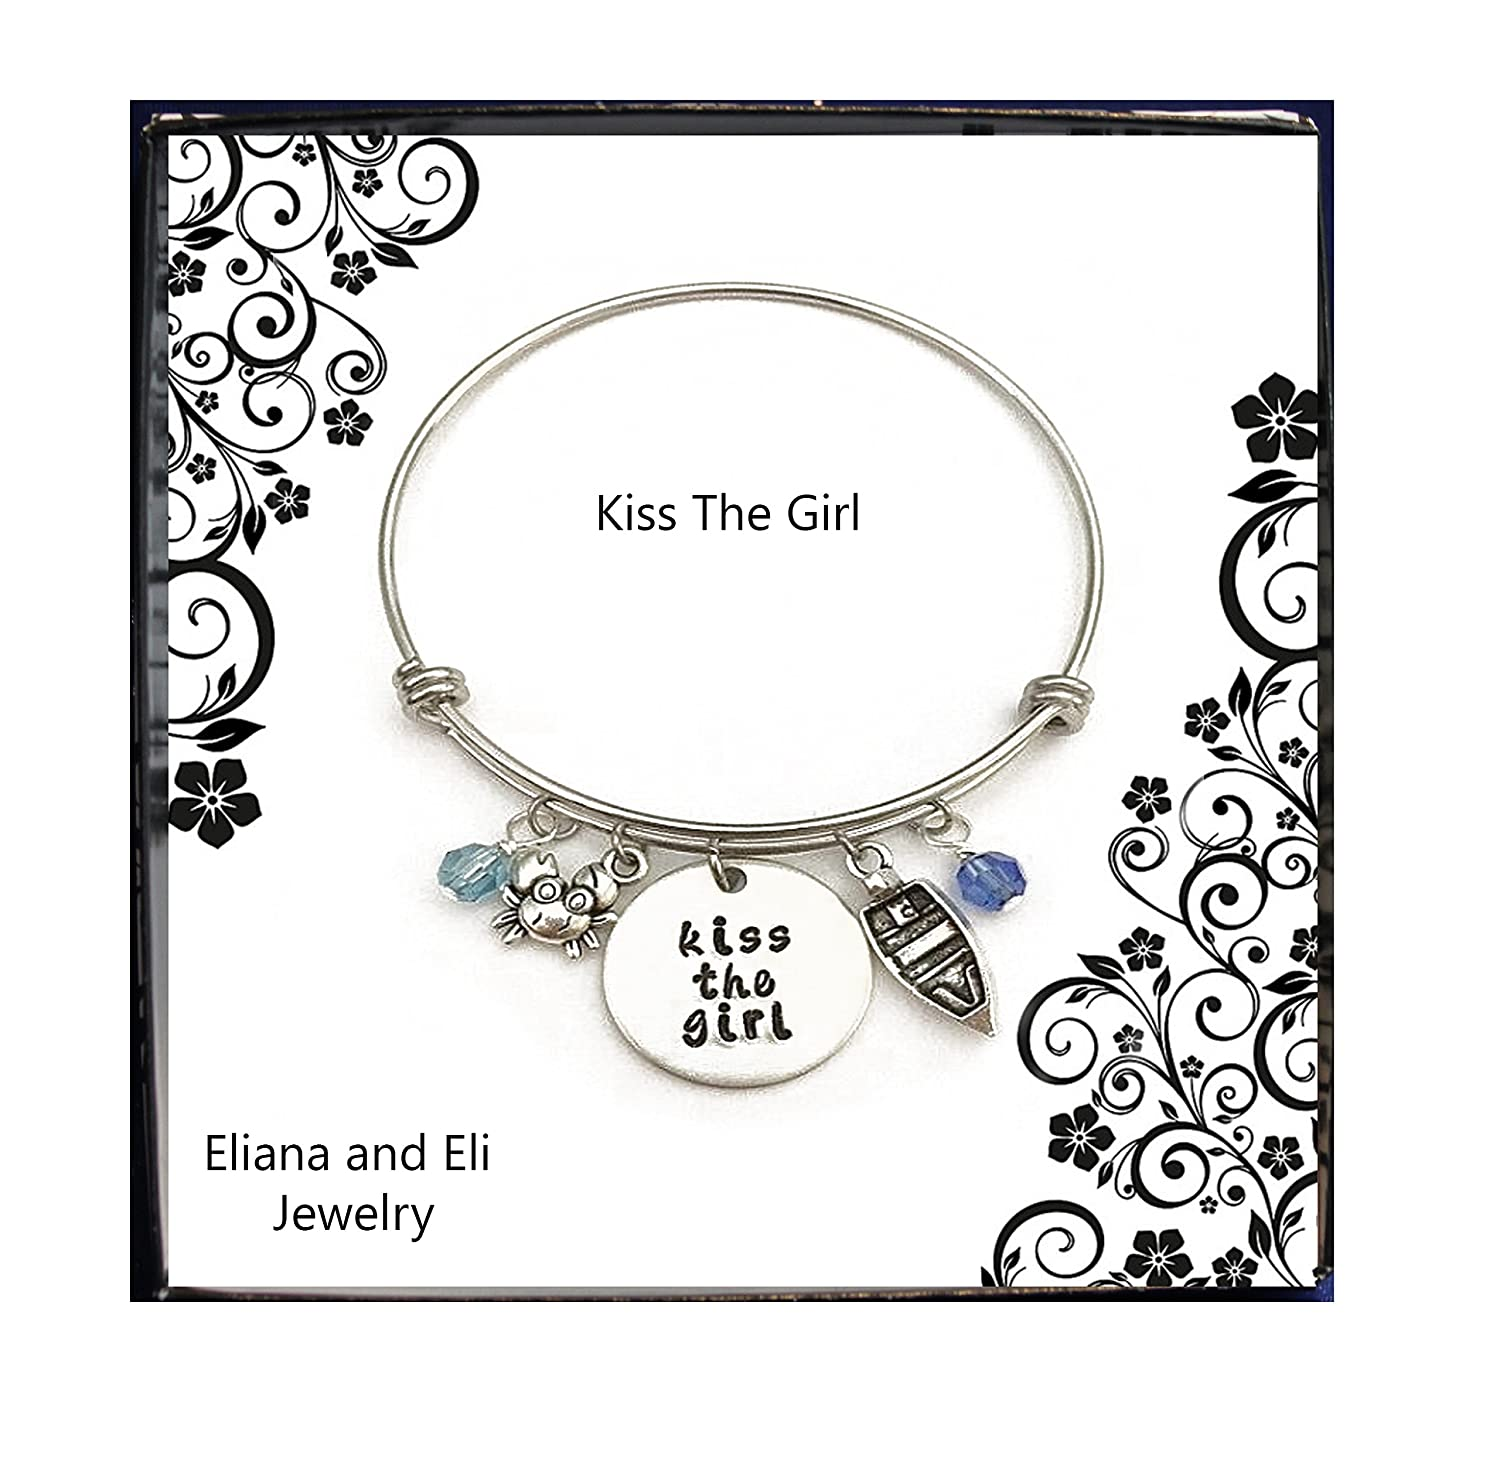 Movie and TV Costume Jewelry Message Charm Expandable Wire Bracelet Birthday Mother Daughter Friendship Gifts